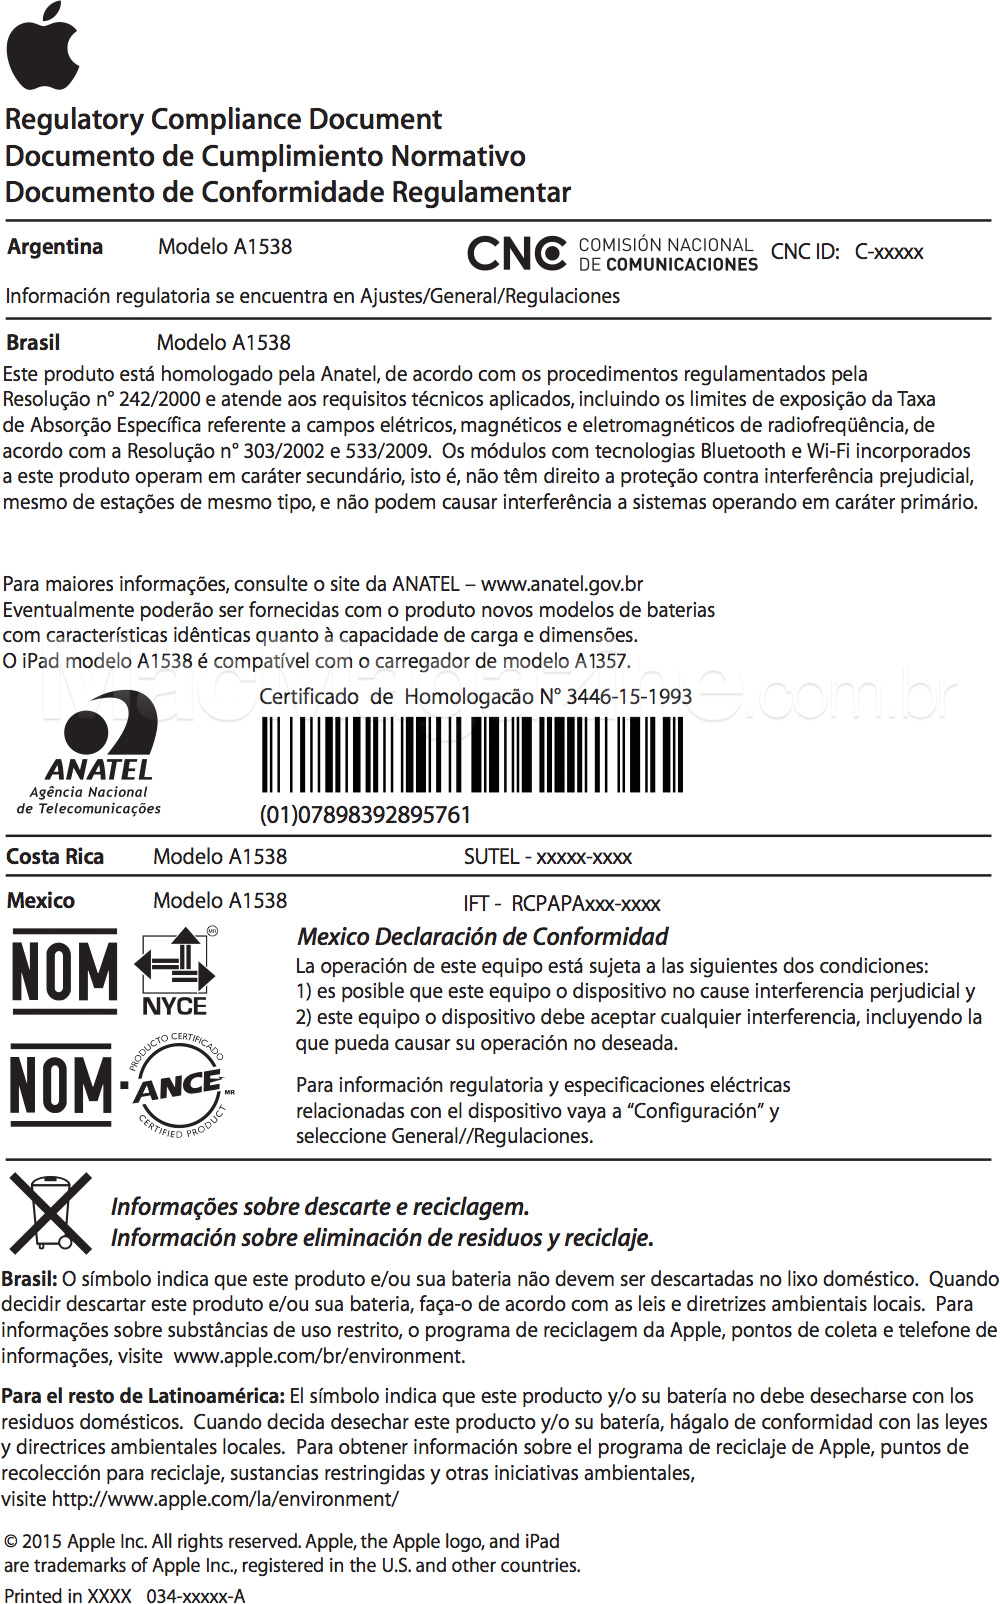 Certificado de homologação do iPad mini 4